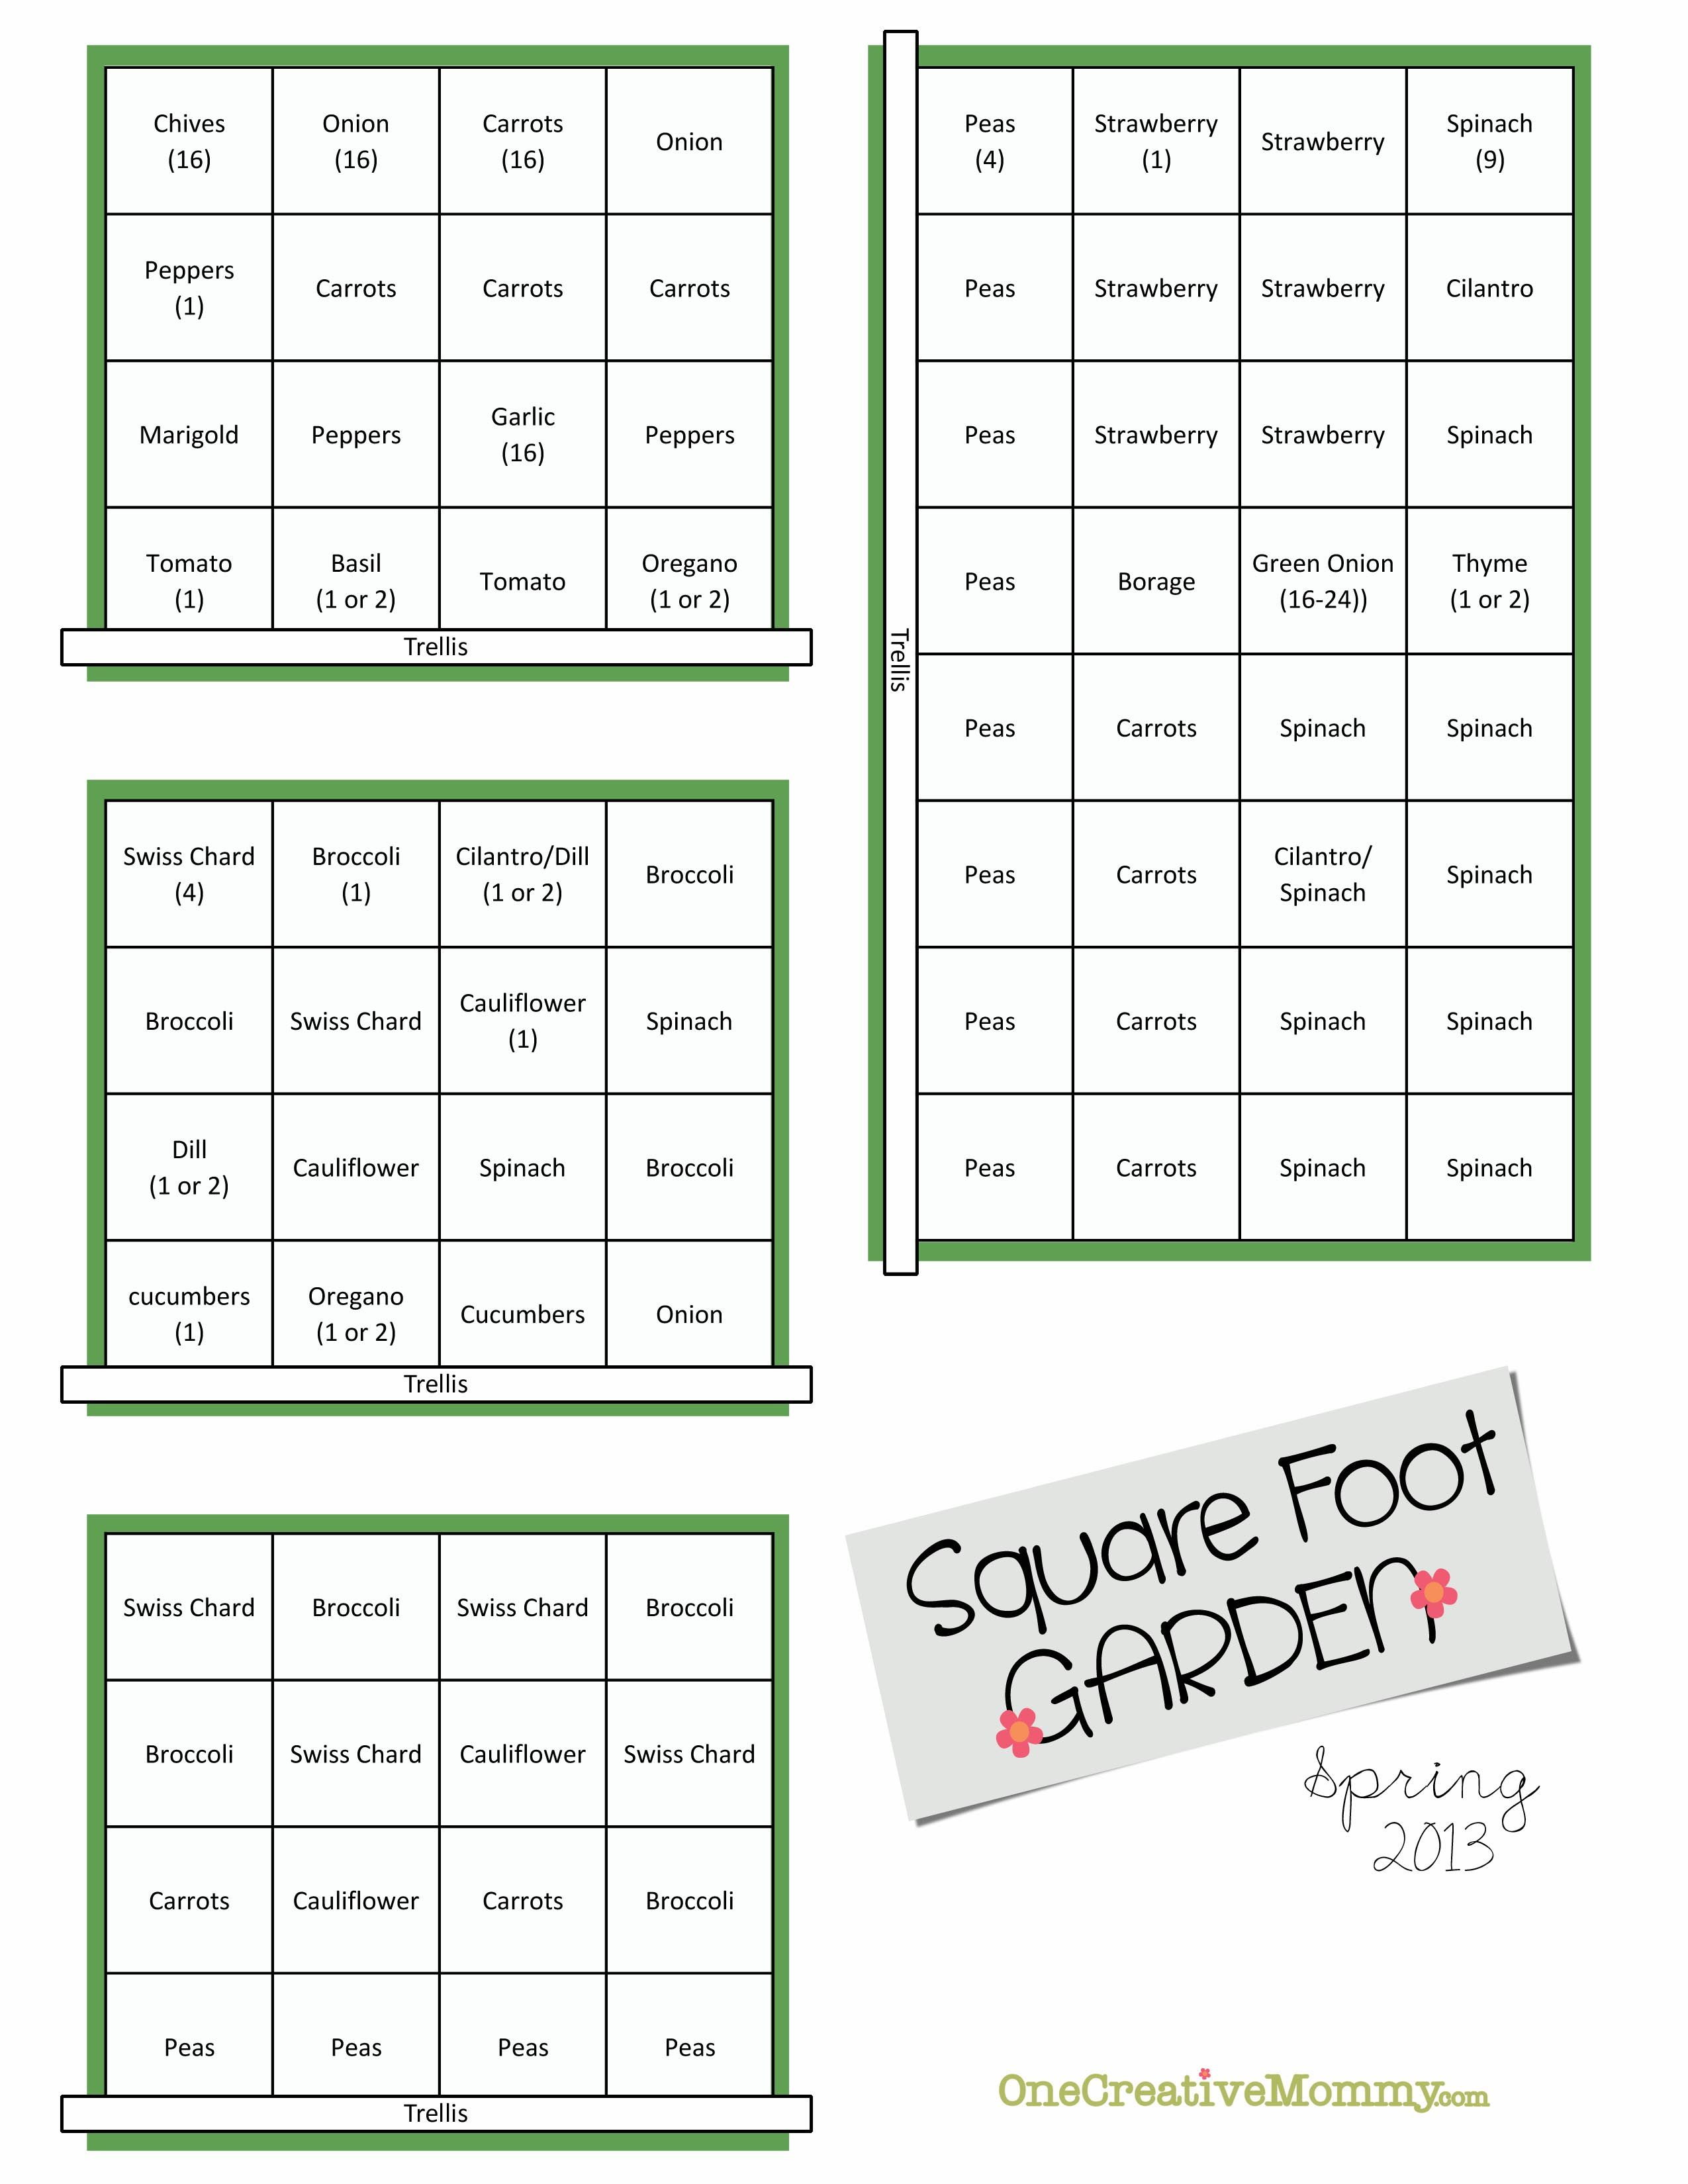 Square Foot Garden Plans For Spring Gardens Raised Beds And Diy